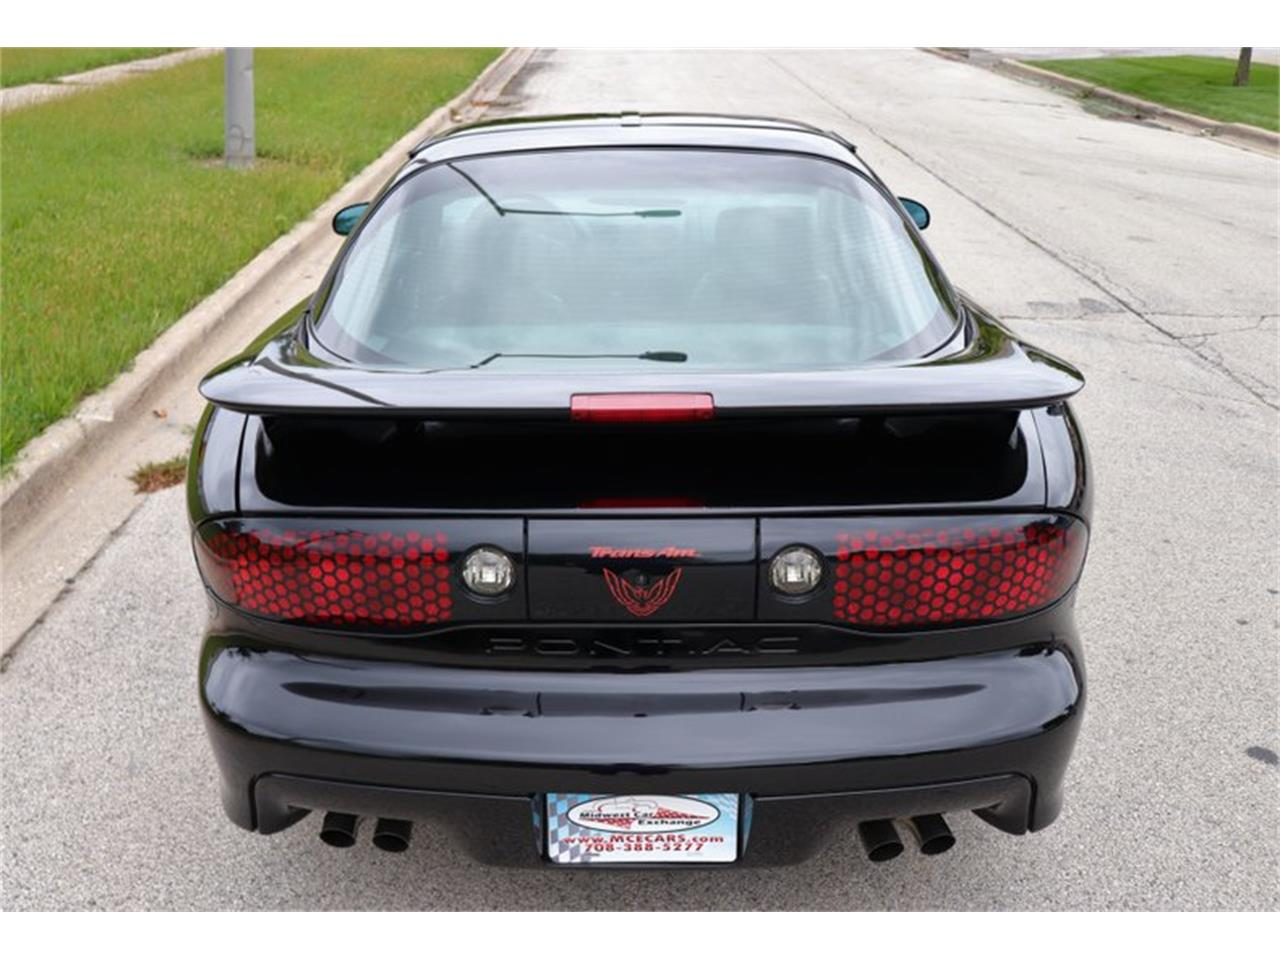 Large Picture of '98 Pontiac Firebird Trans Am located in Alsip Illinois - $16,900.00 Offered by Midwest Car Exchange - OIXQ